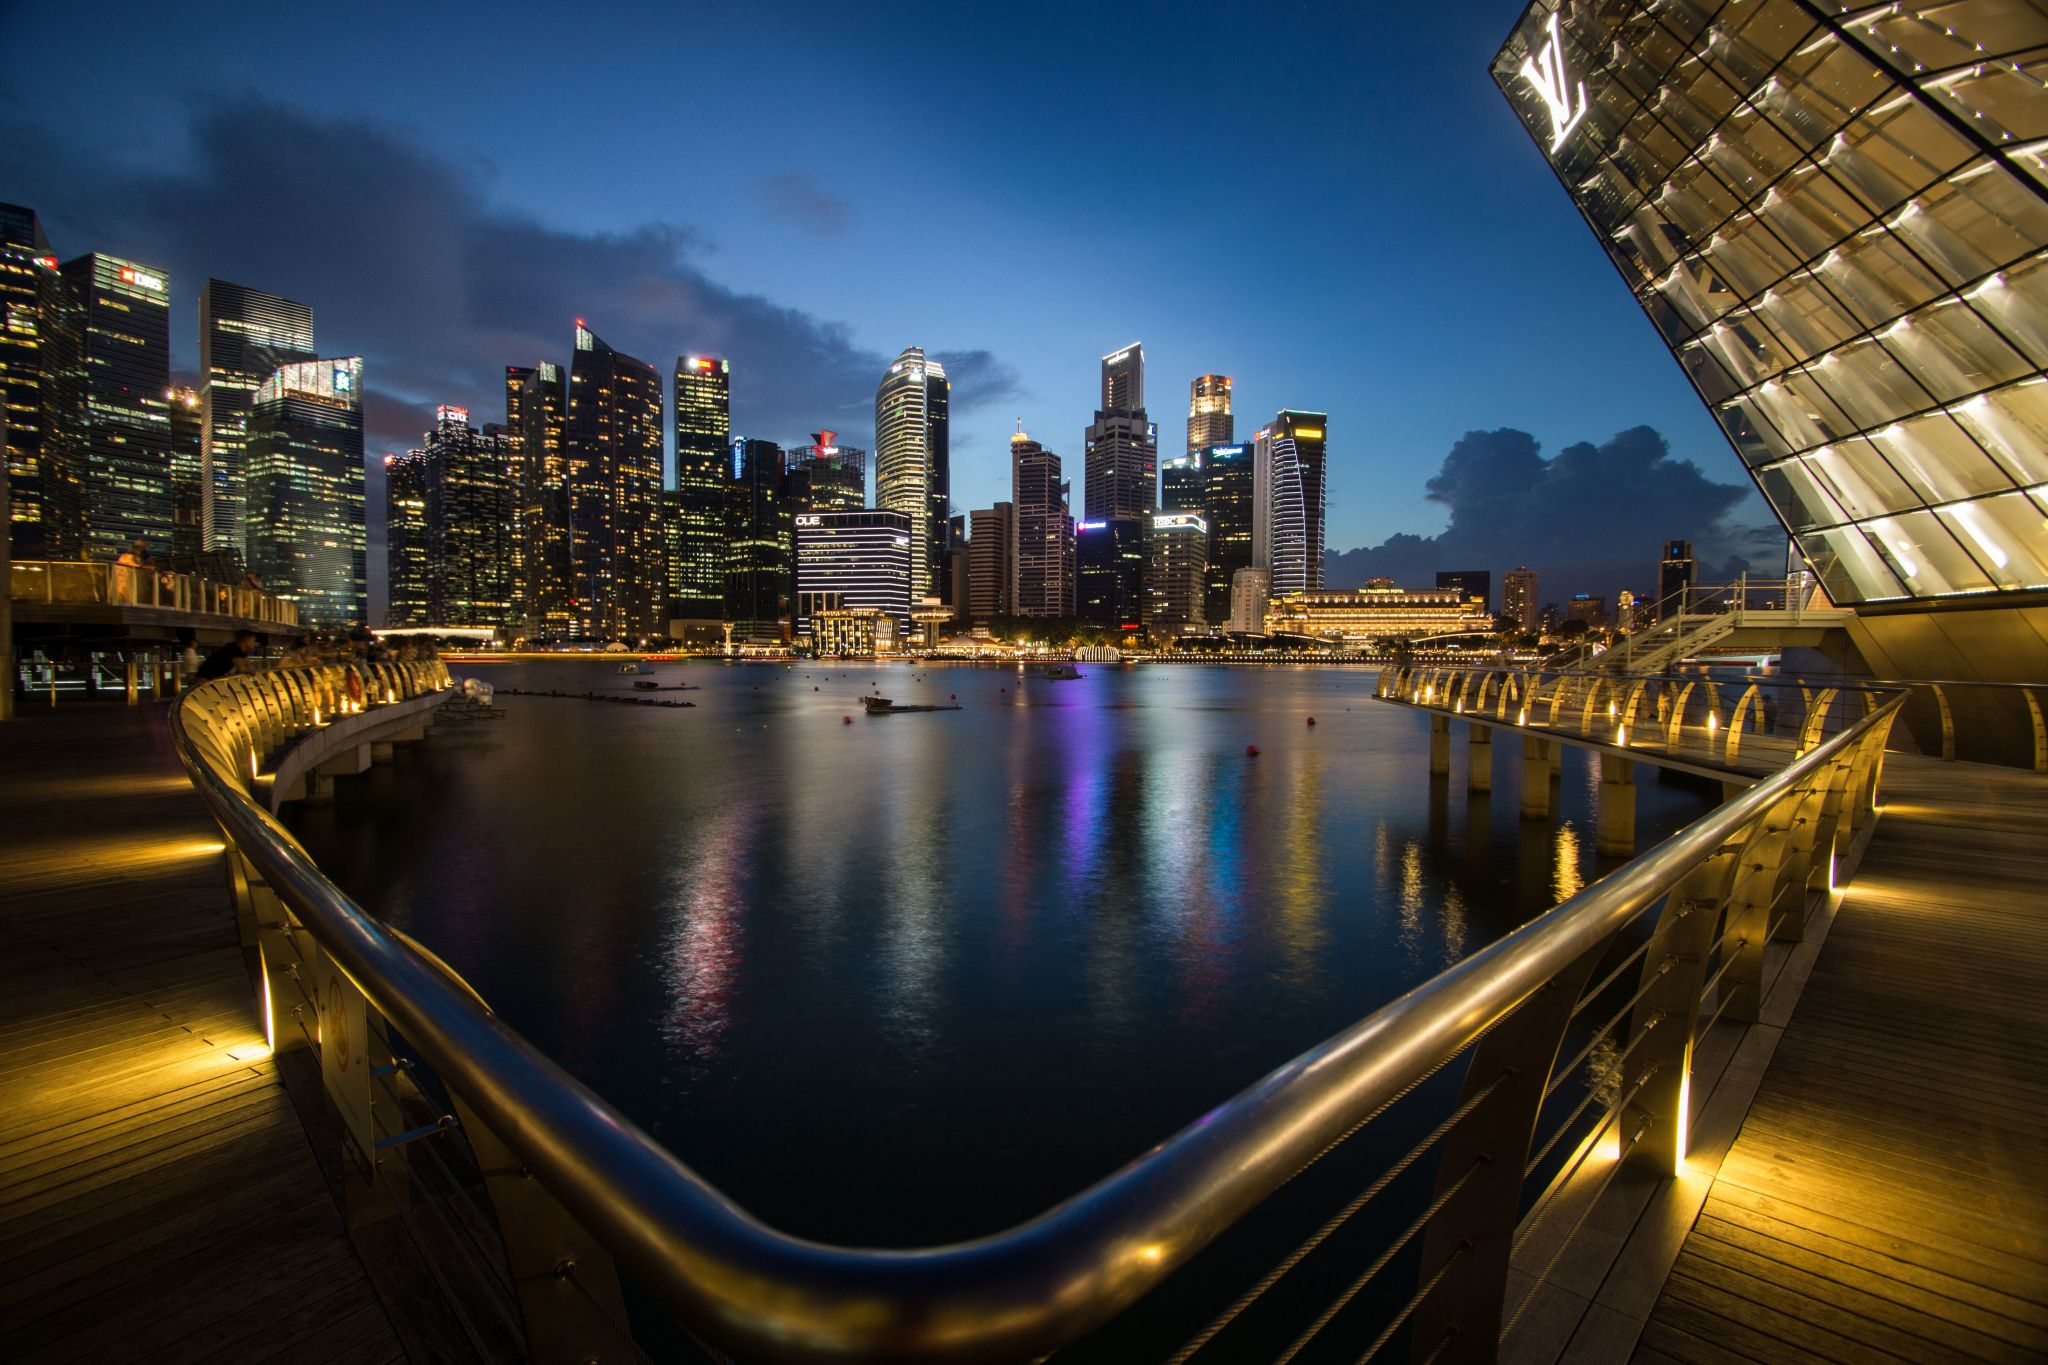 Bay Front, Singapore